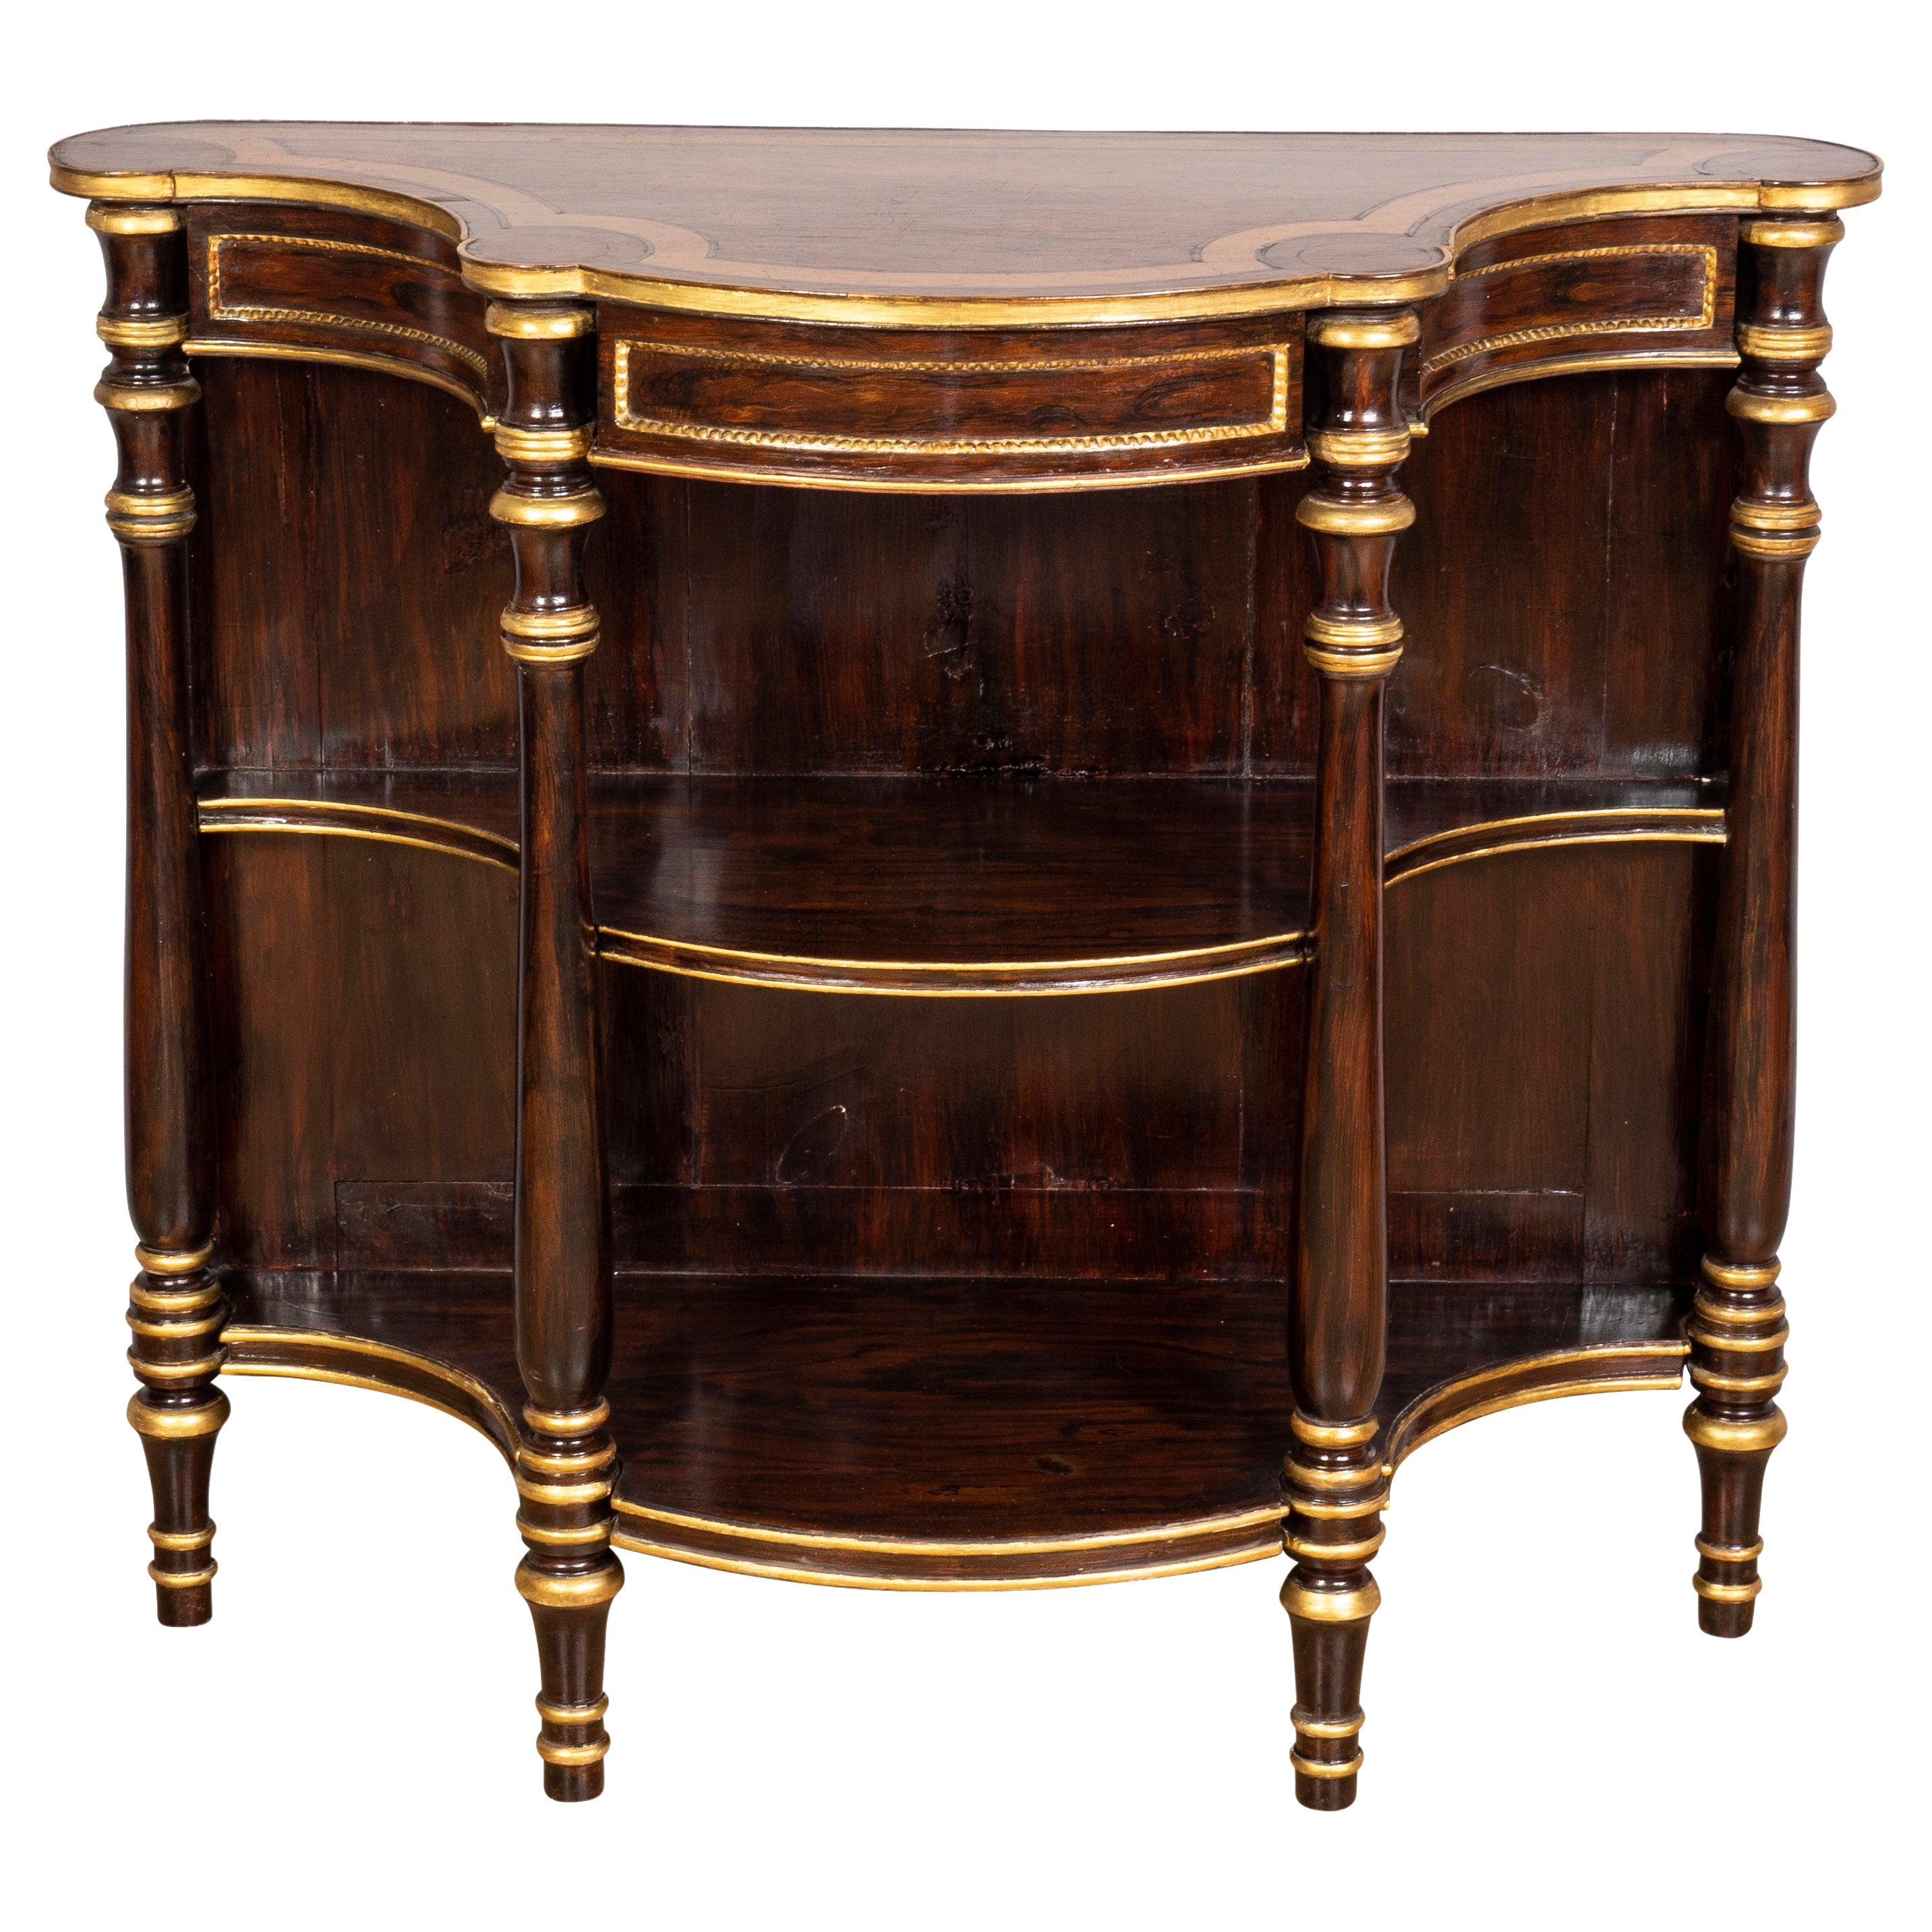 Regency Rosewood and Faux Rosewood Console Table